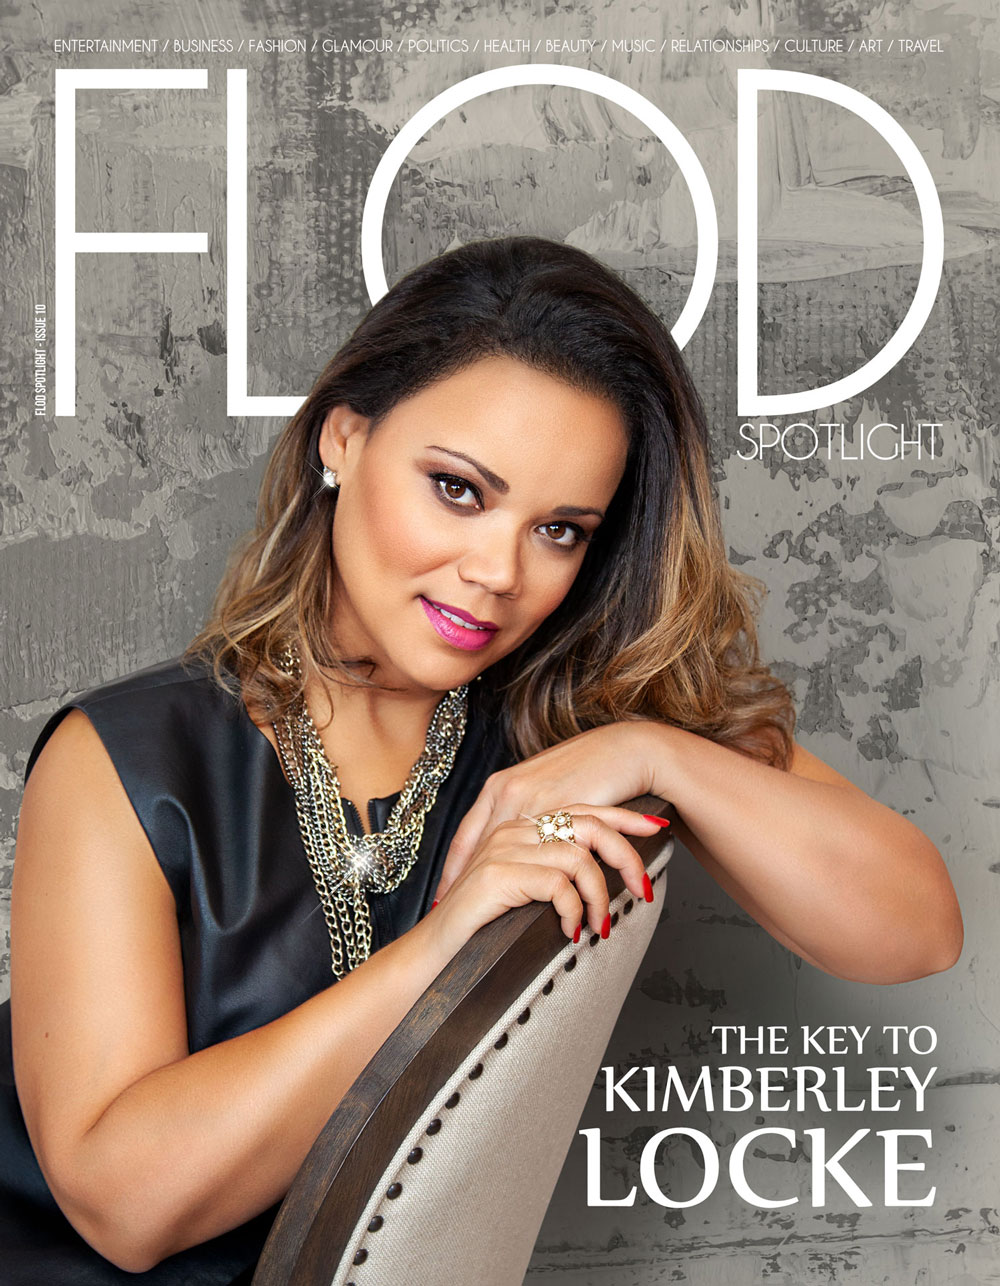 Issue 10 – The Key to Kimberley Locke